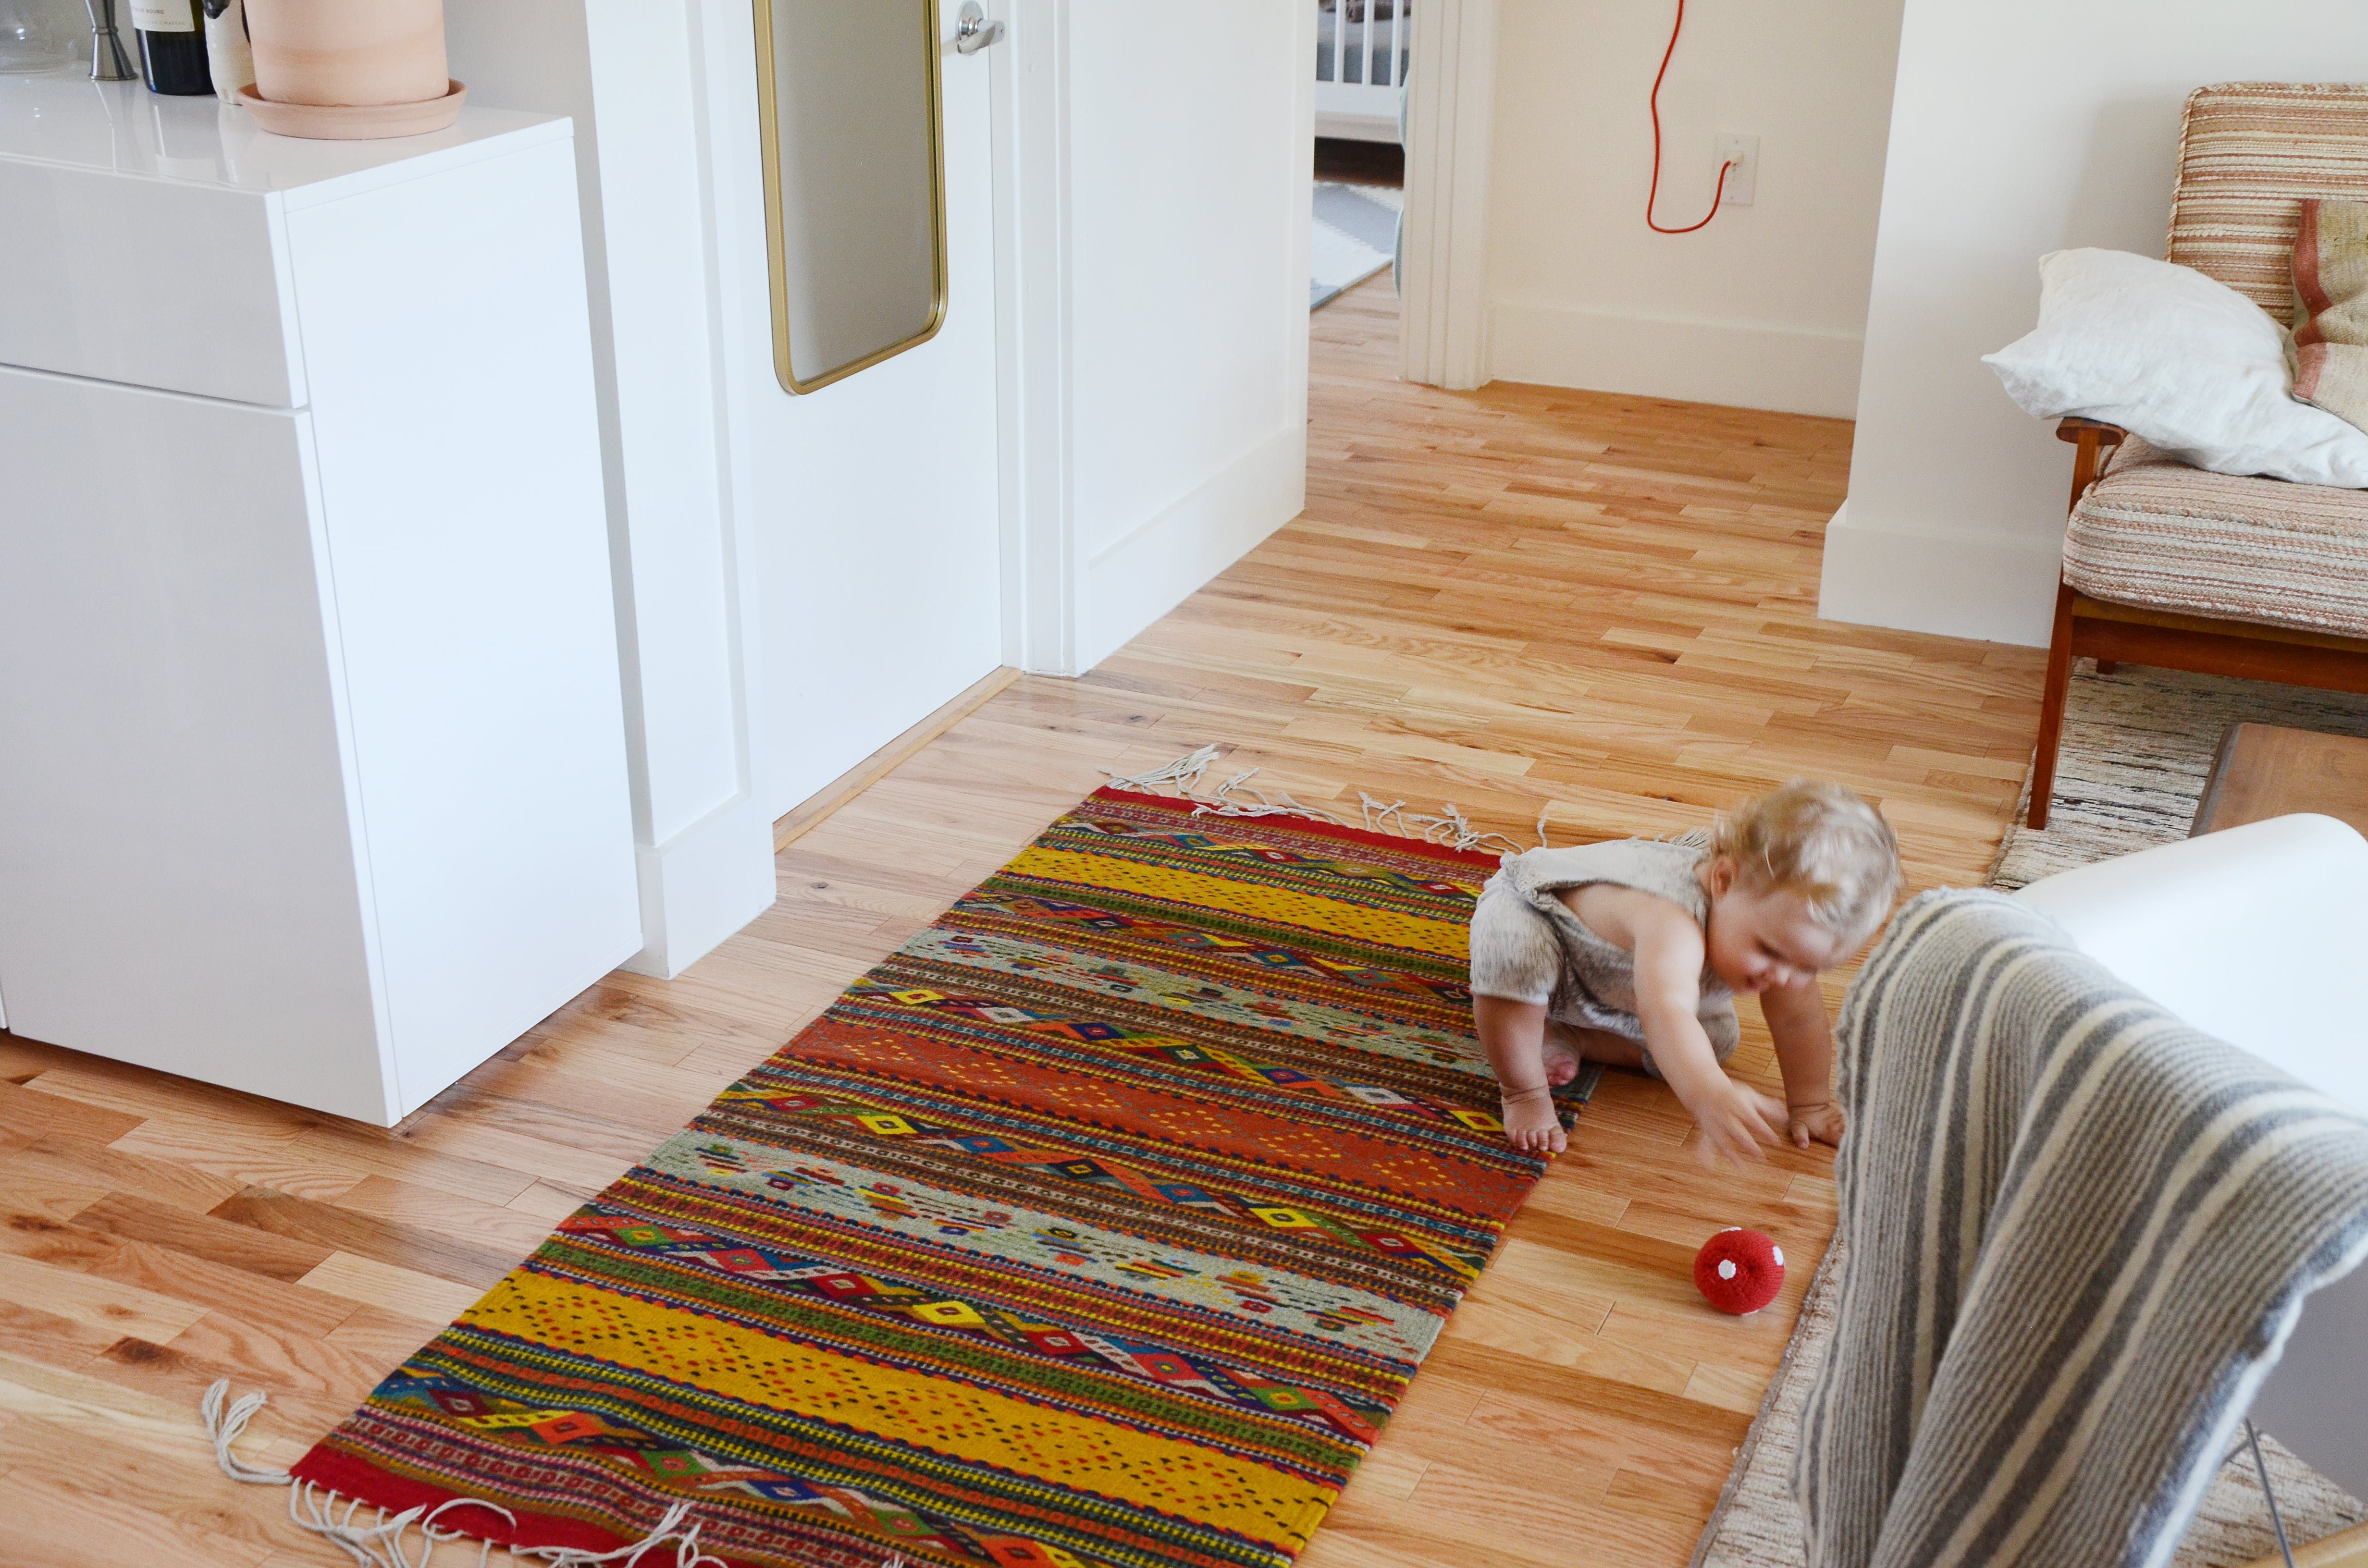 how much is it to rent a carpet cleaner